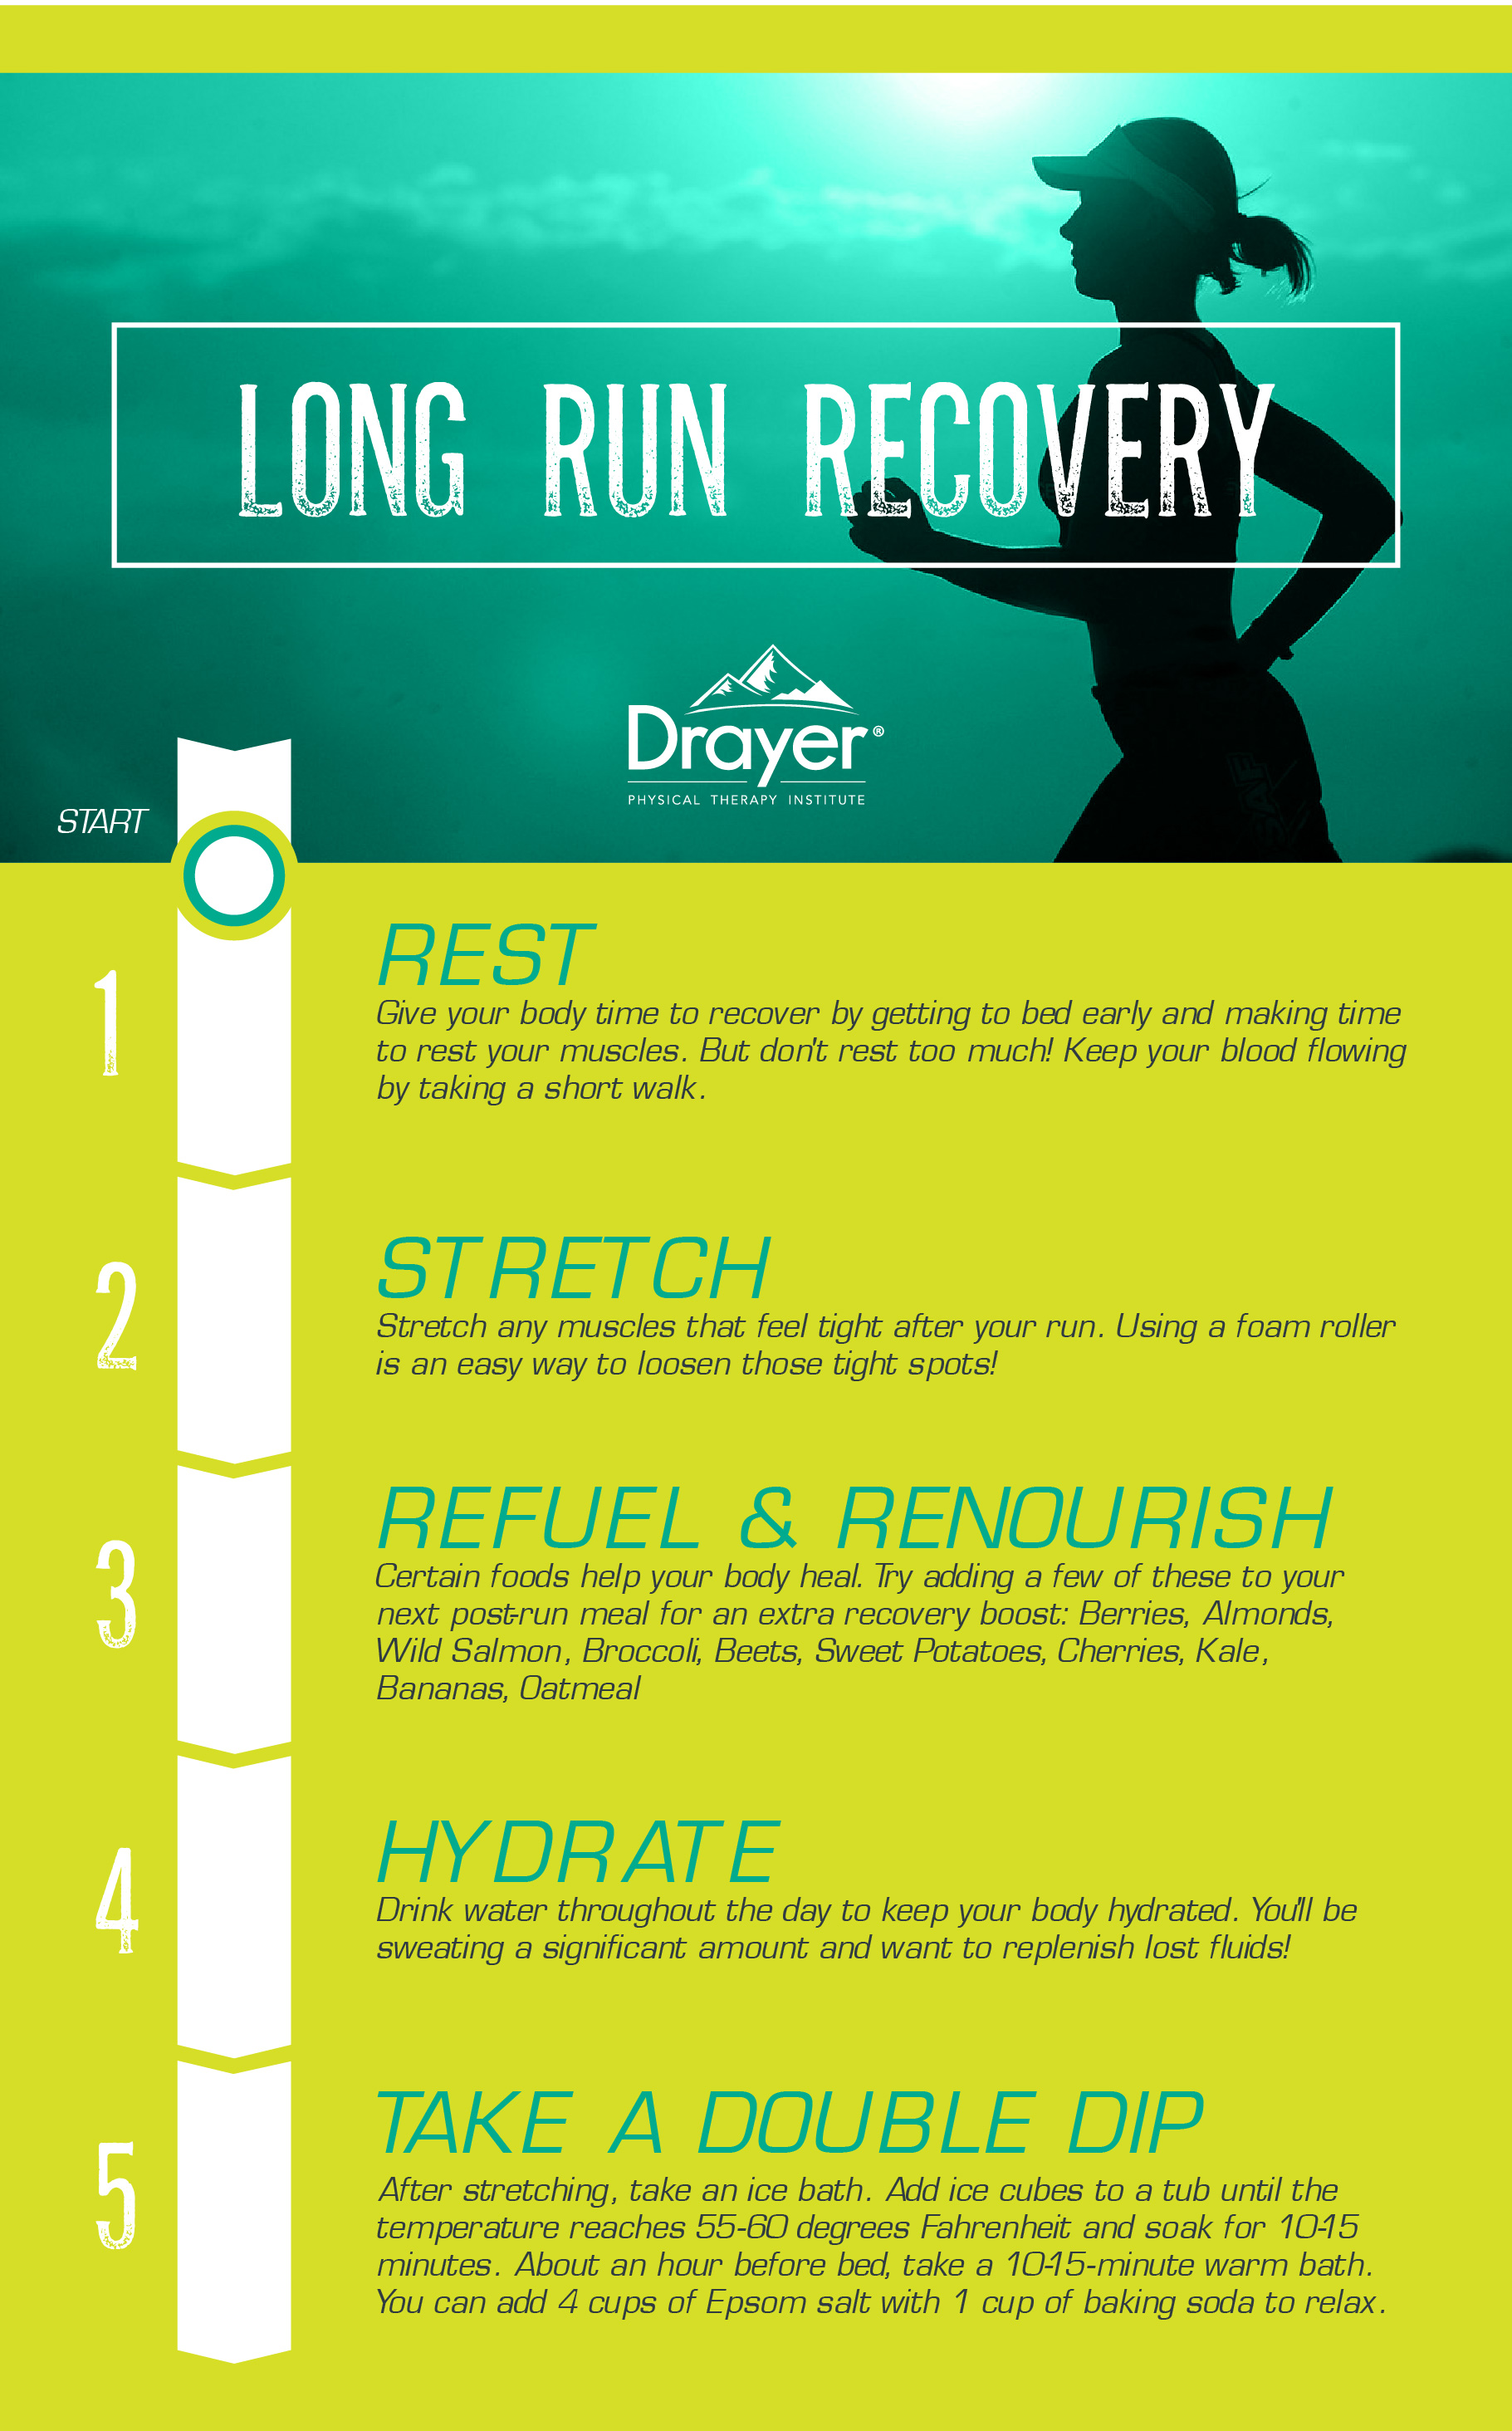 Long Run Recovery Micrographic | Drayer Physical Therapy